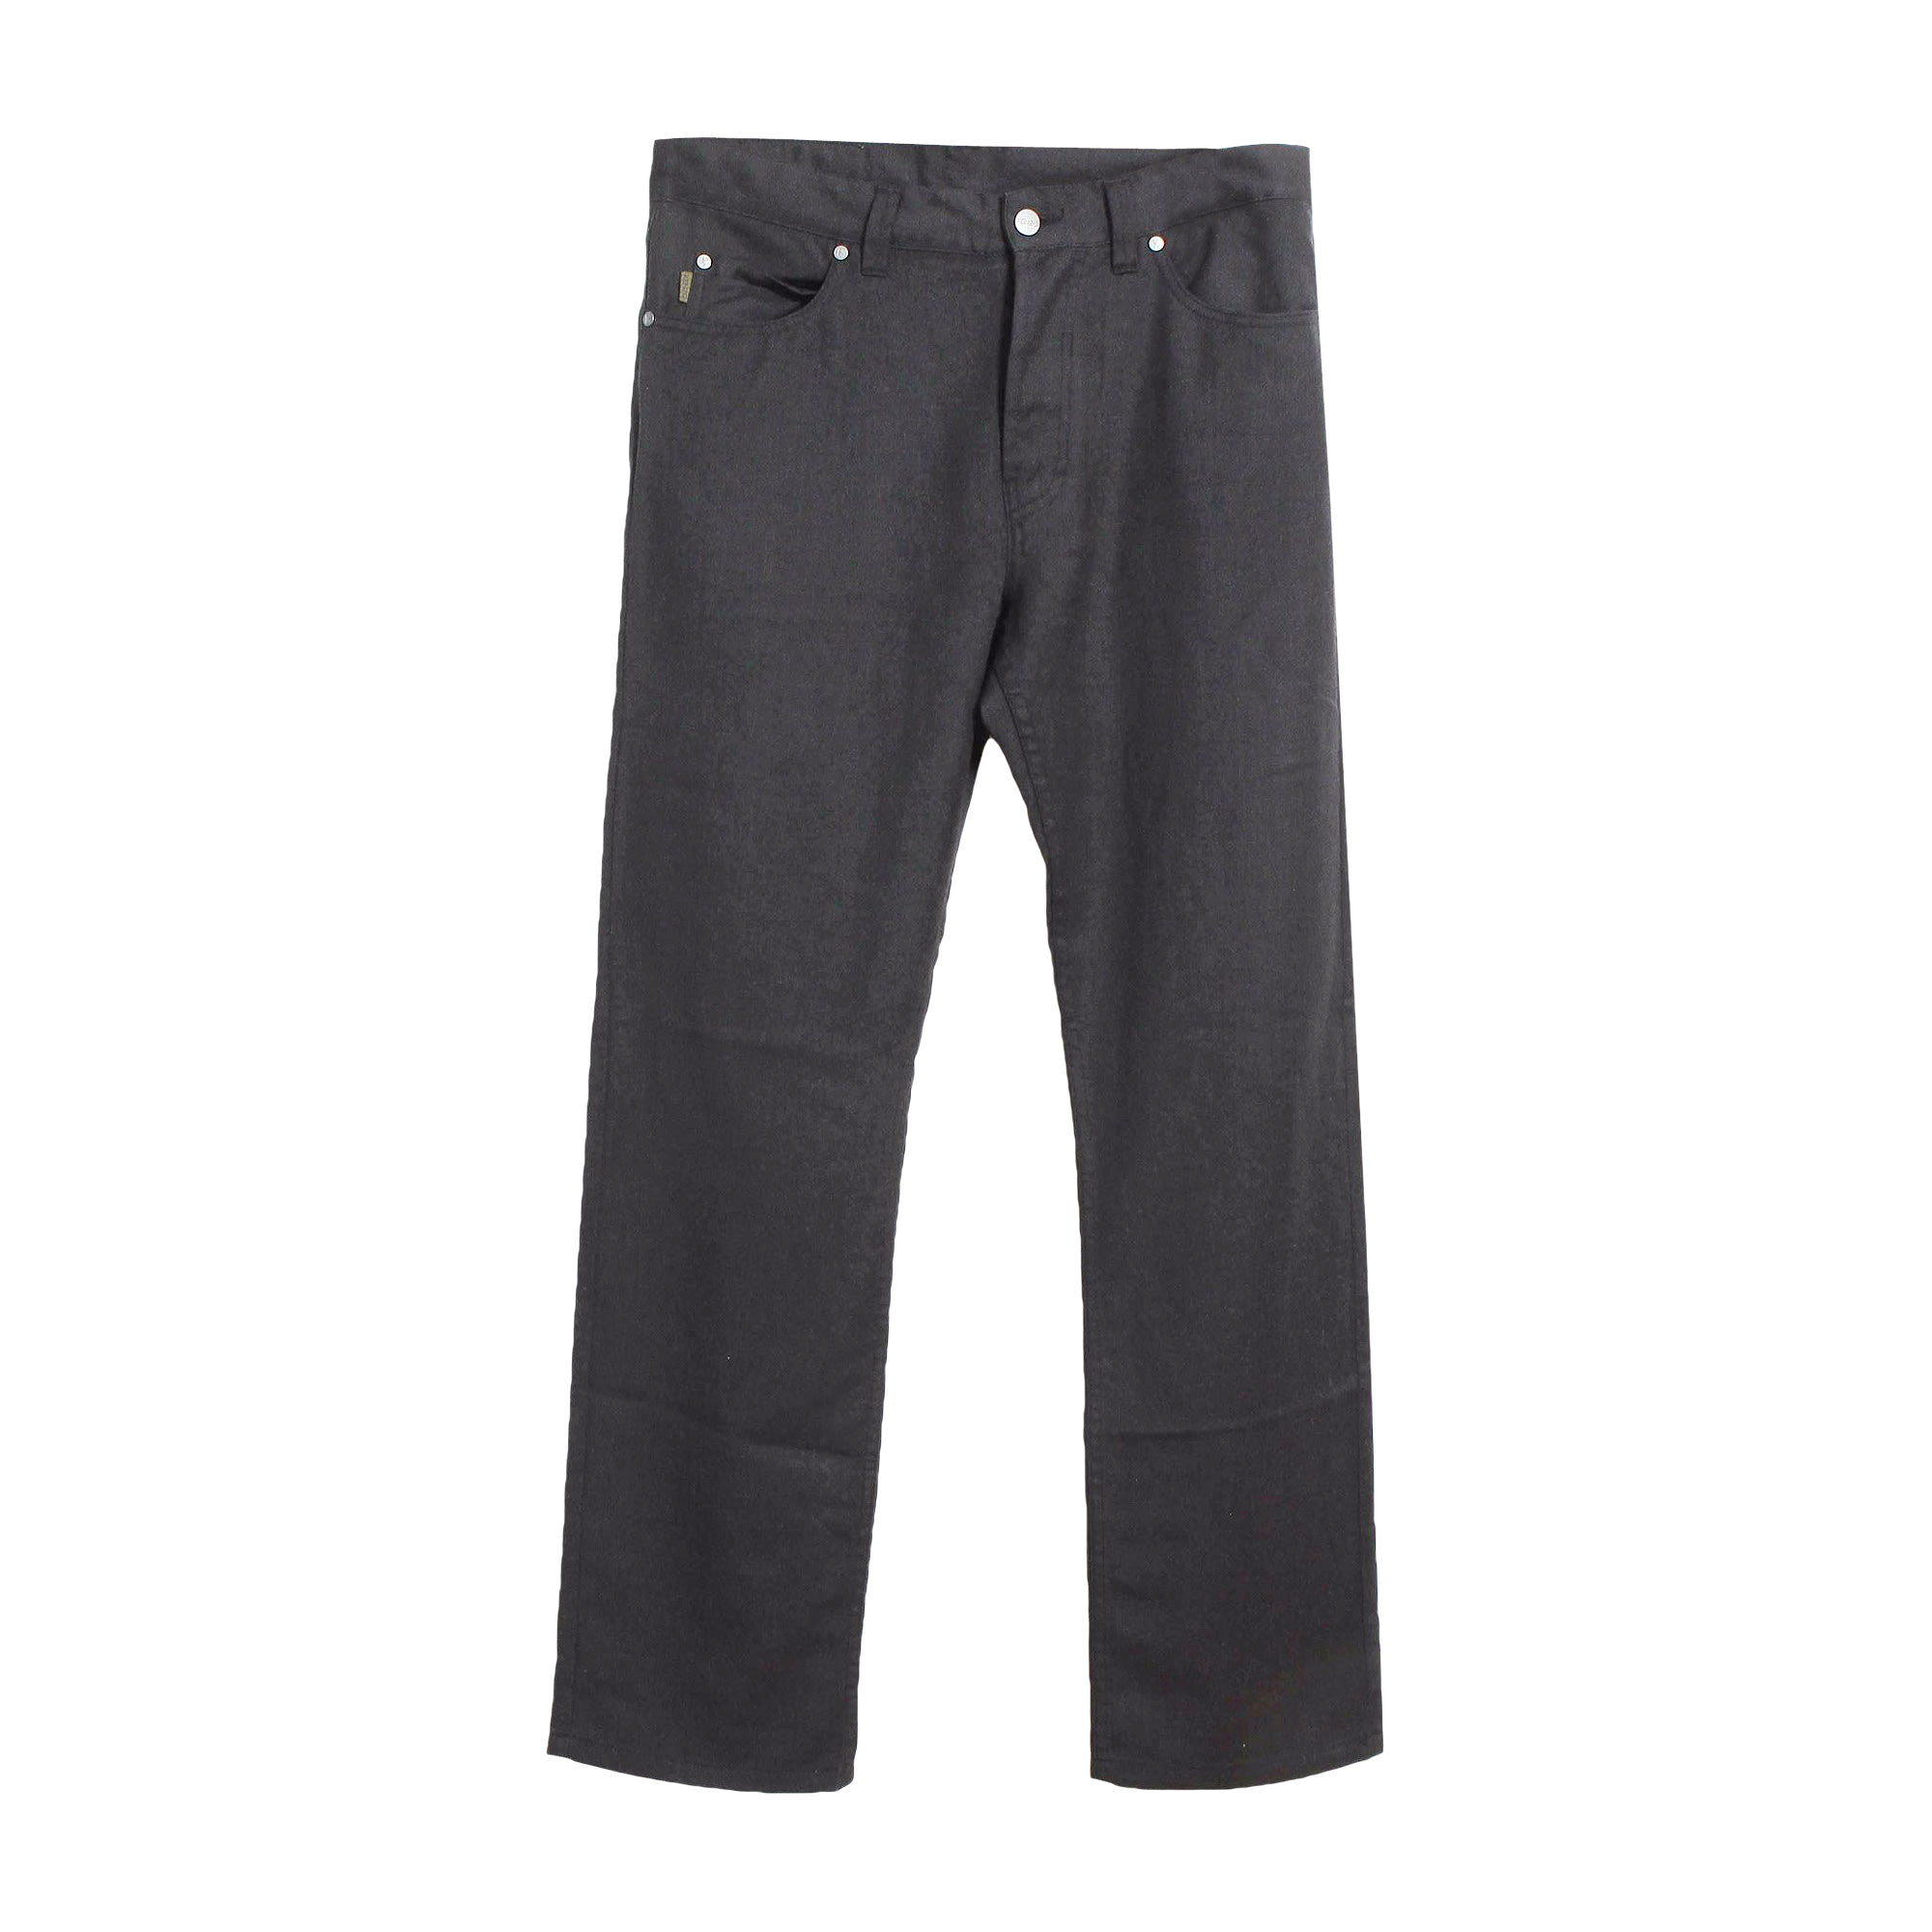 Straight Leg Pants KENZO Gray, charcoal